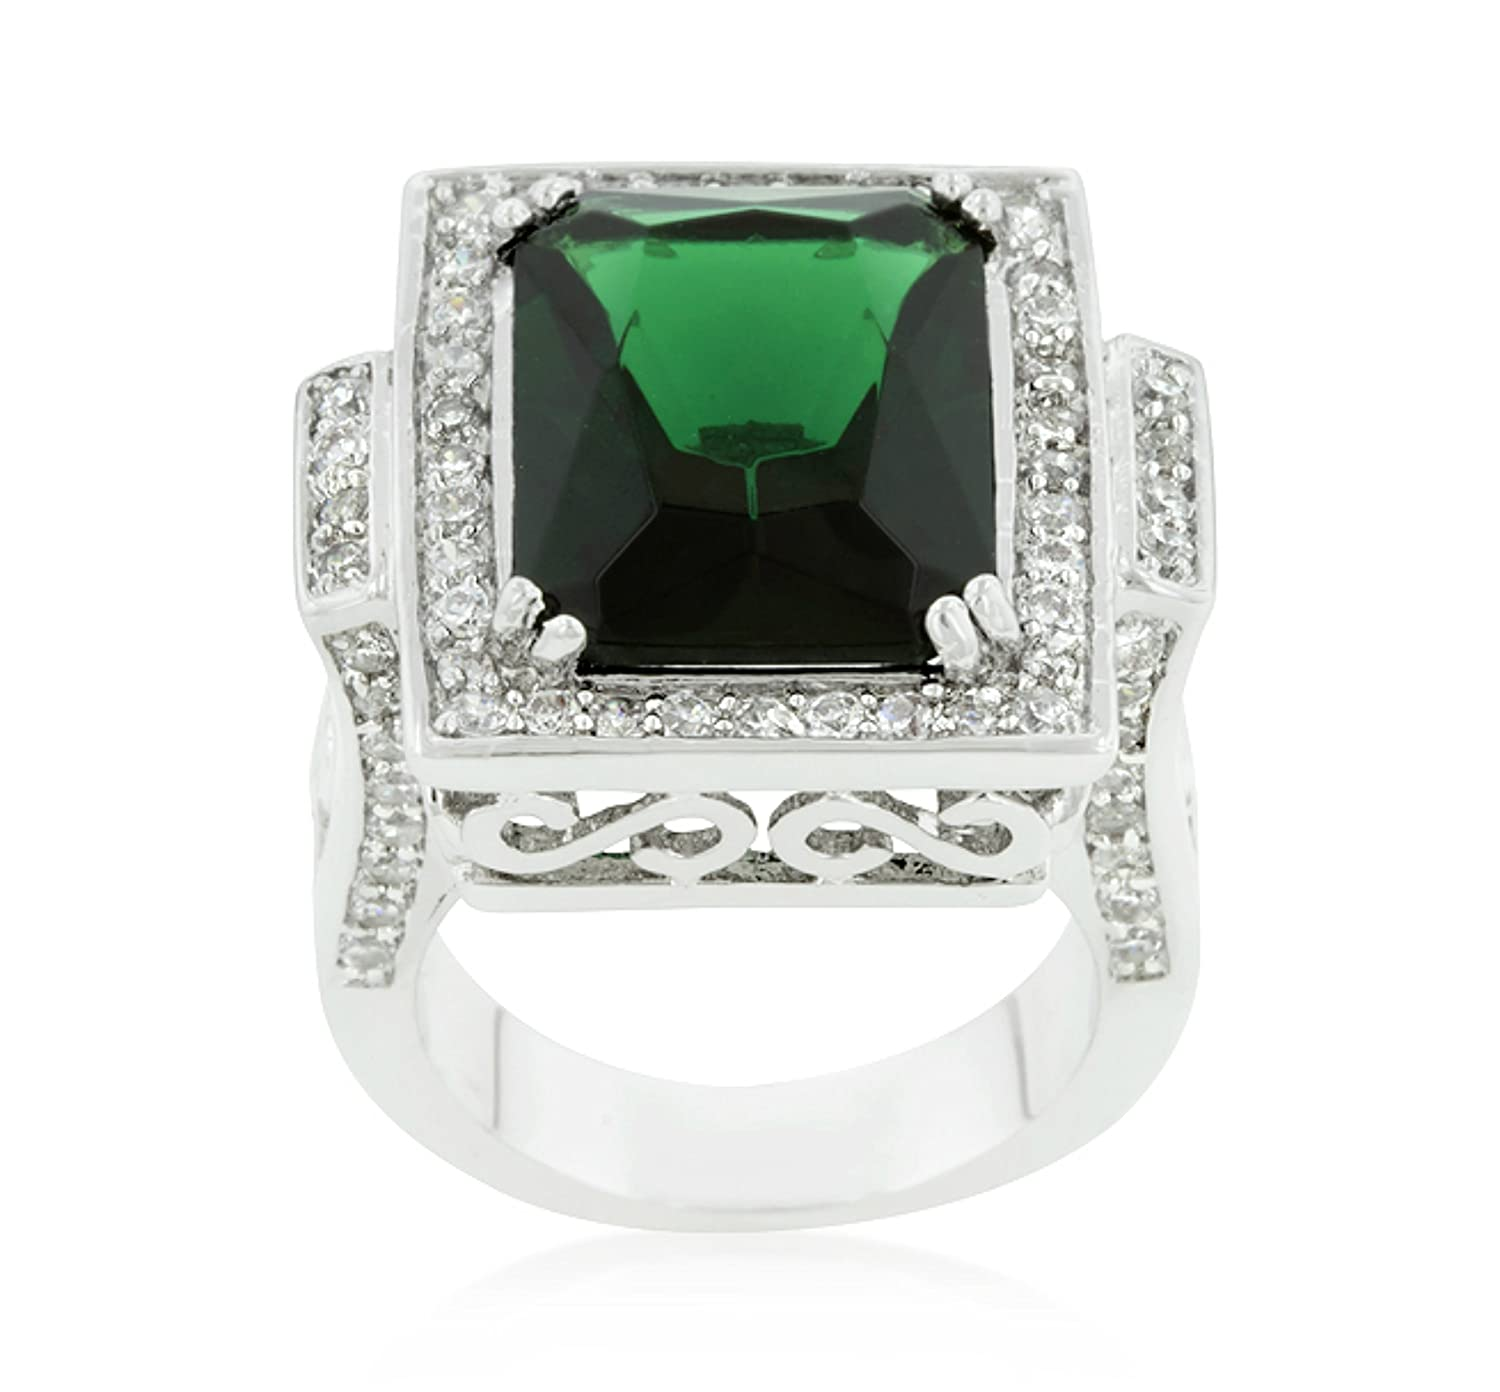 Beloved Sparkles Louie Vintage Emerald Green Classic 8ct Cocktail Ring